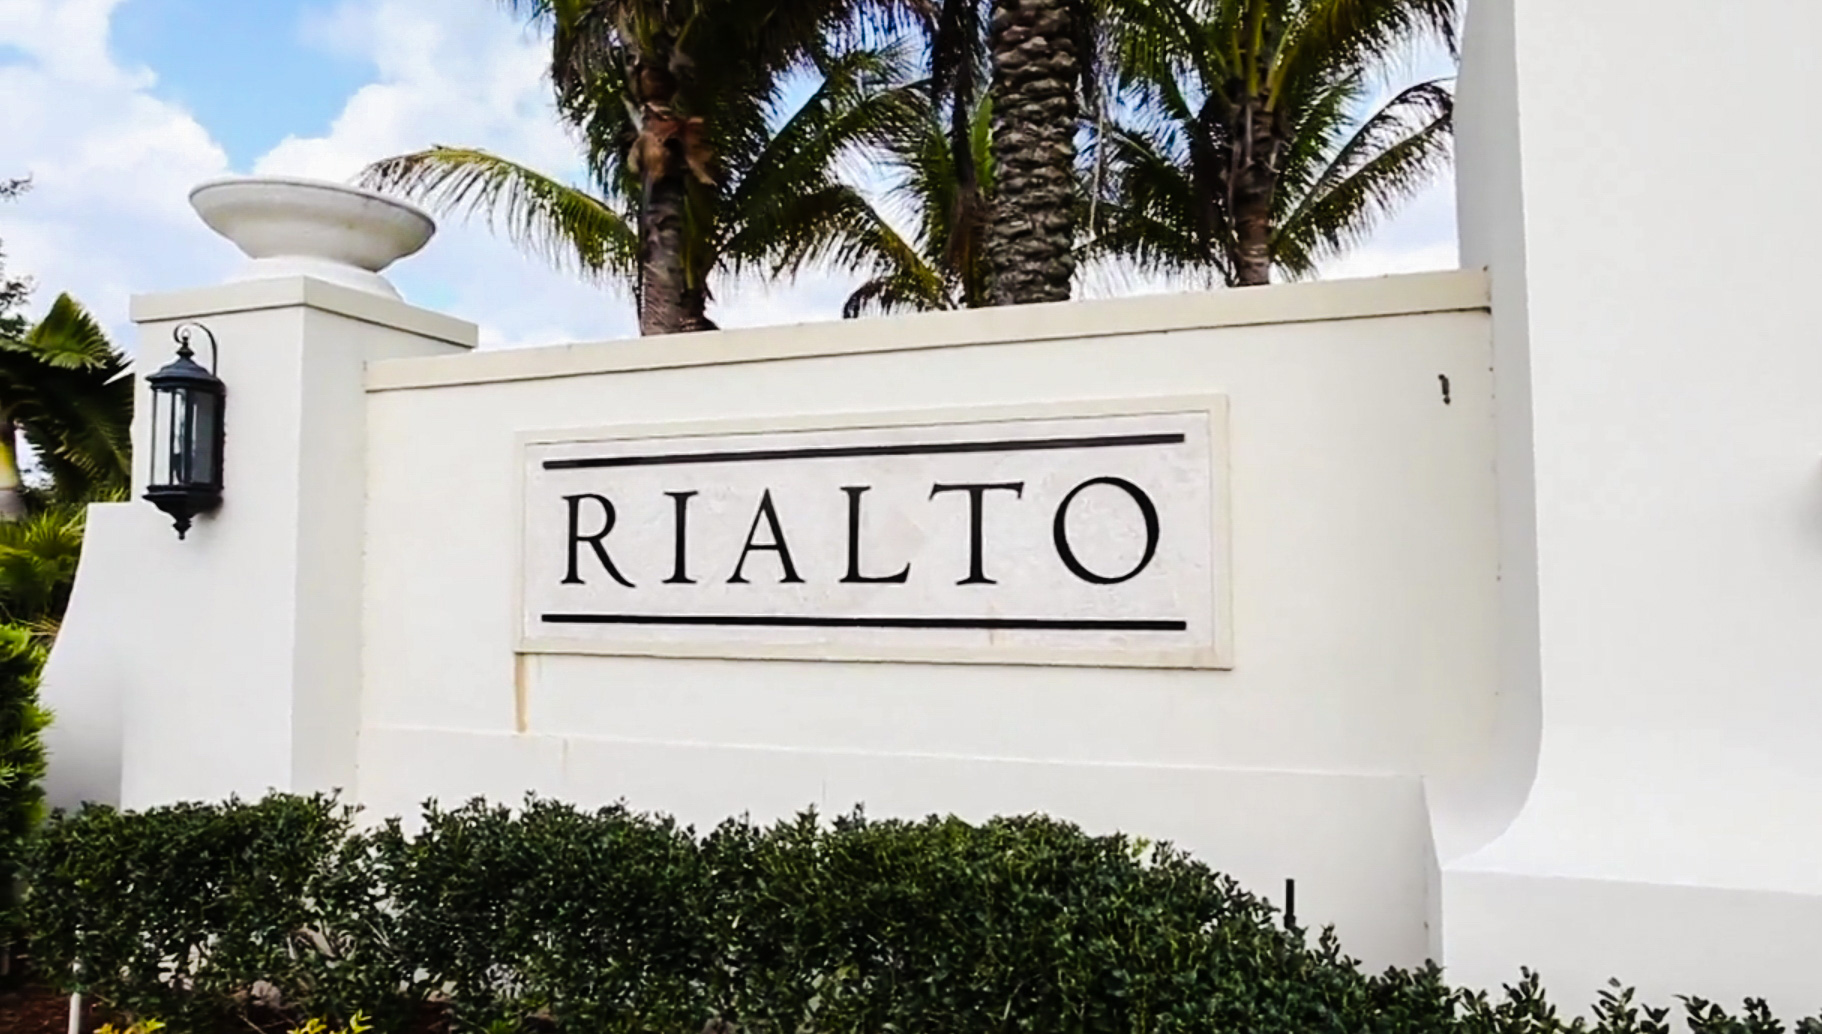 Rialto Homes for Sale in Jupiter, FL 33458 community image